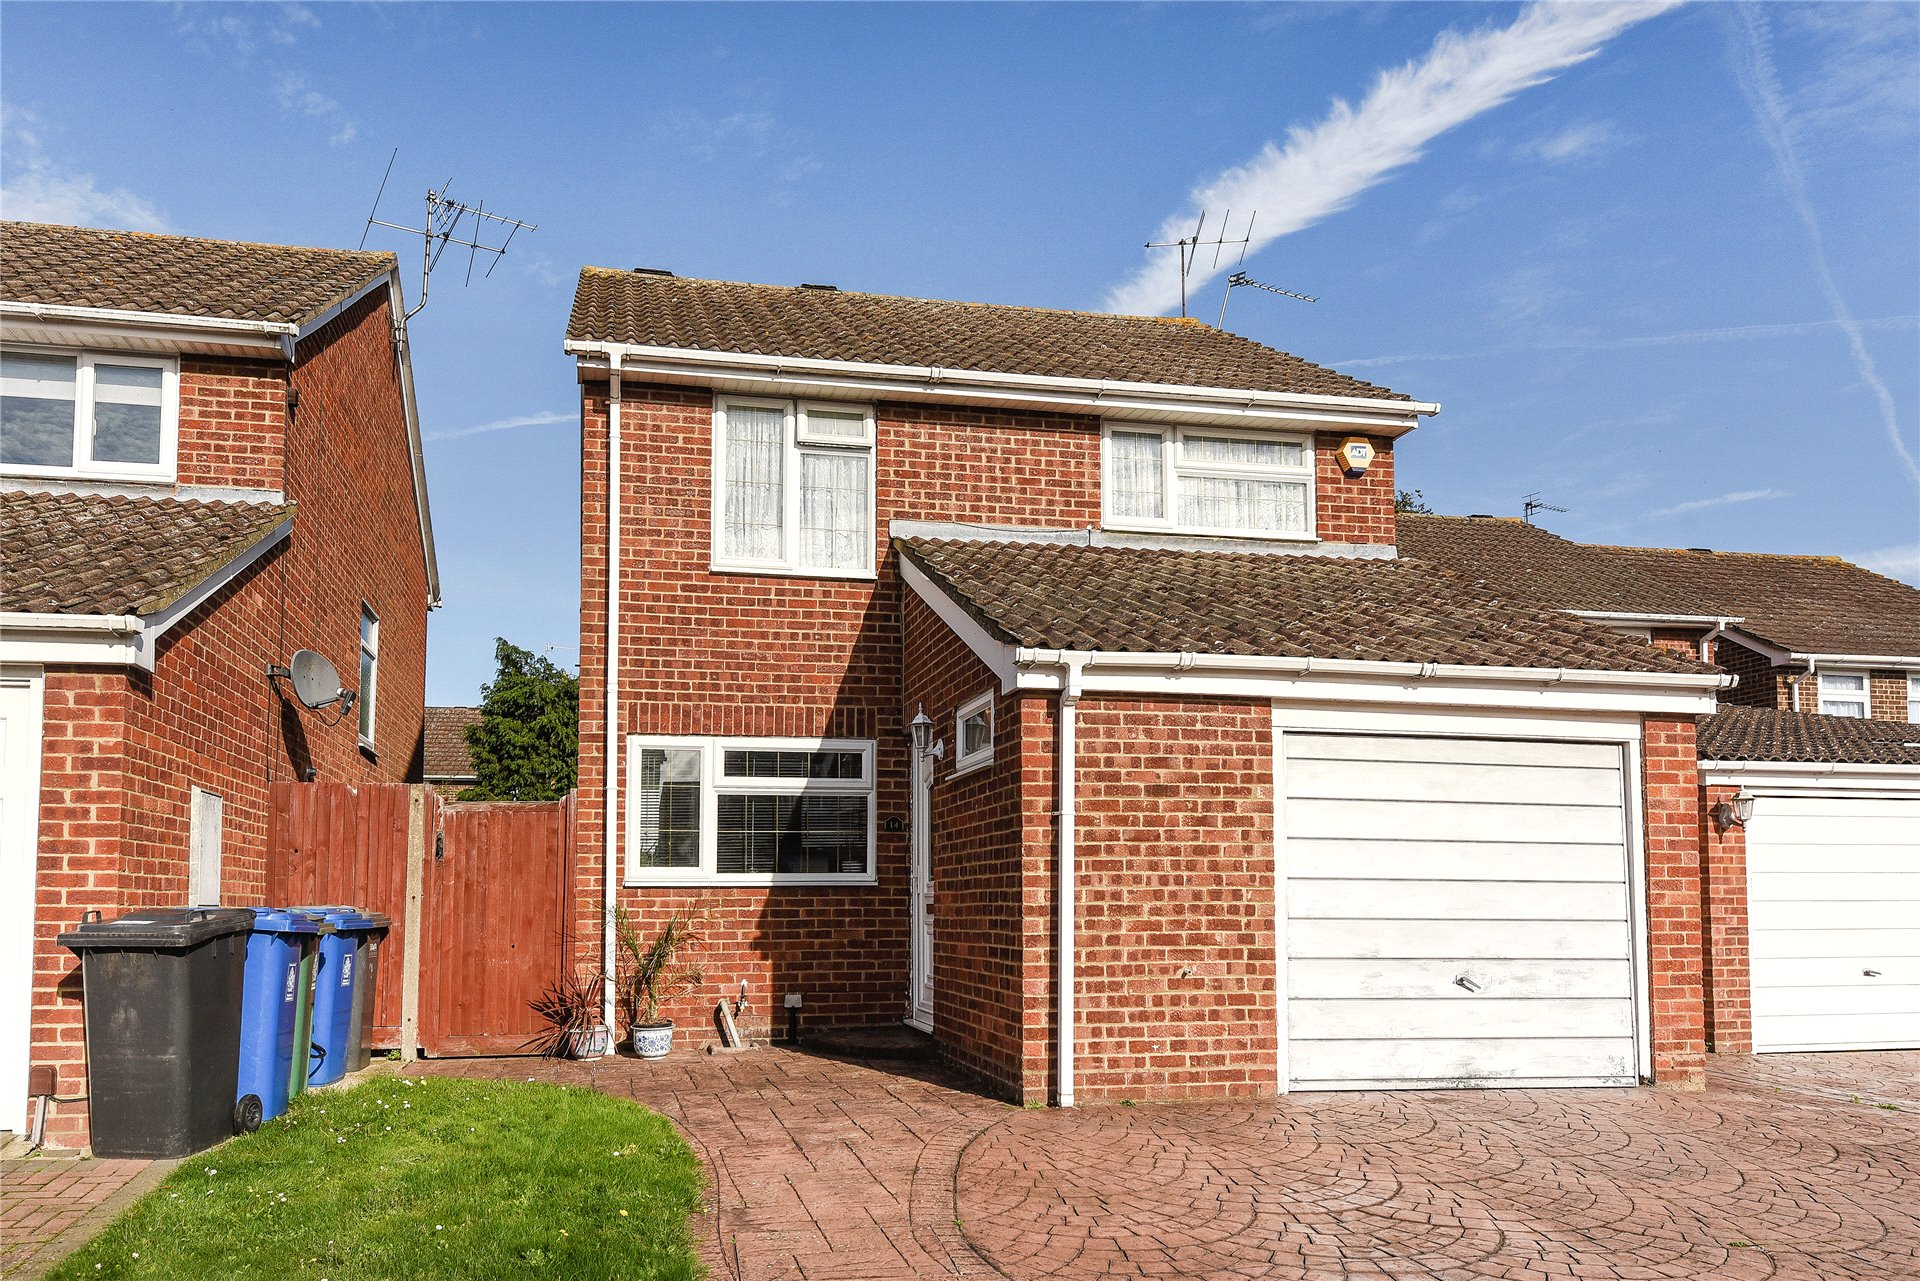 3 Bedrooms Detached House for sale in Sandy Mead, Holyport, Maidenhead, Berkshire, SL6